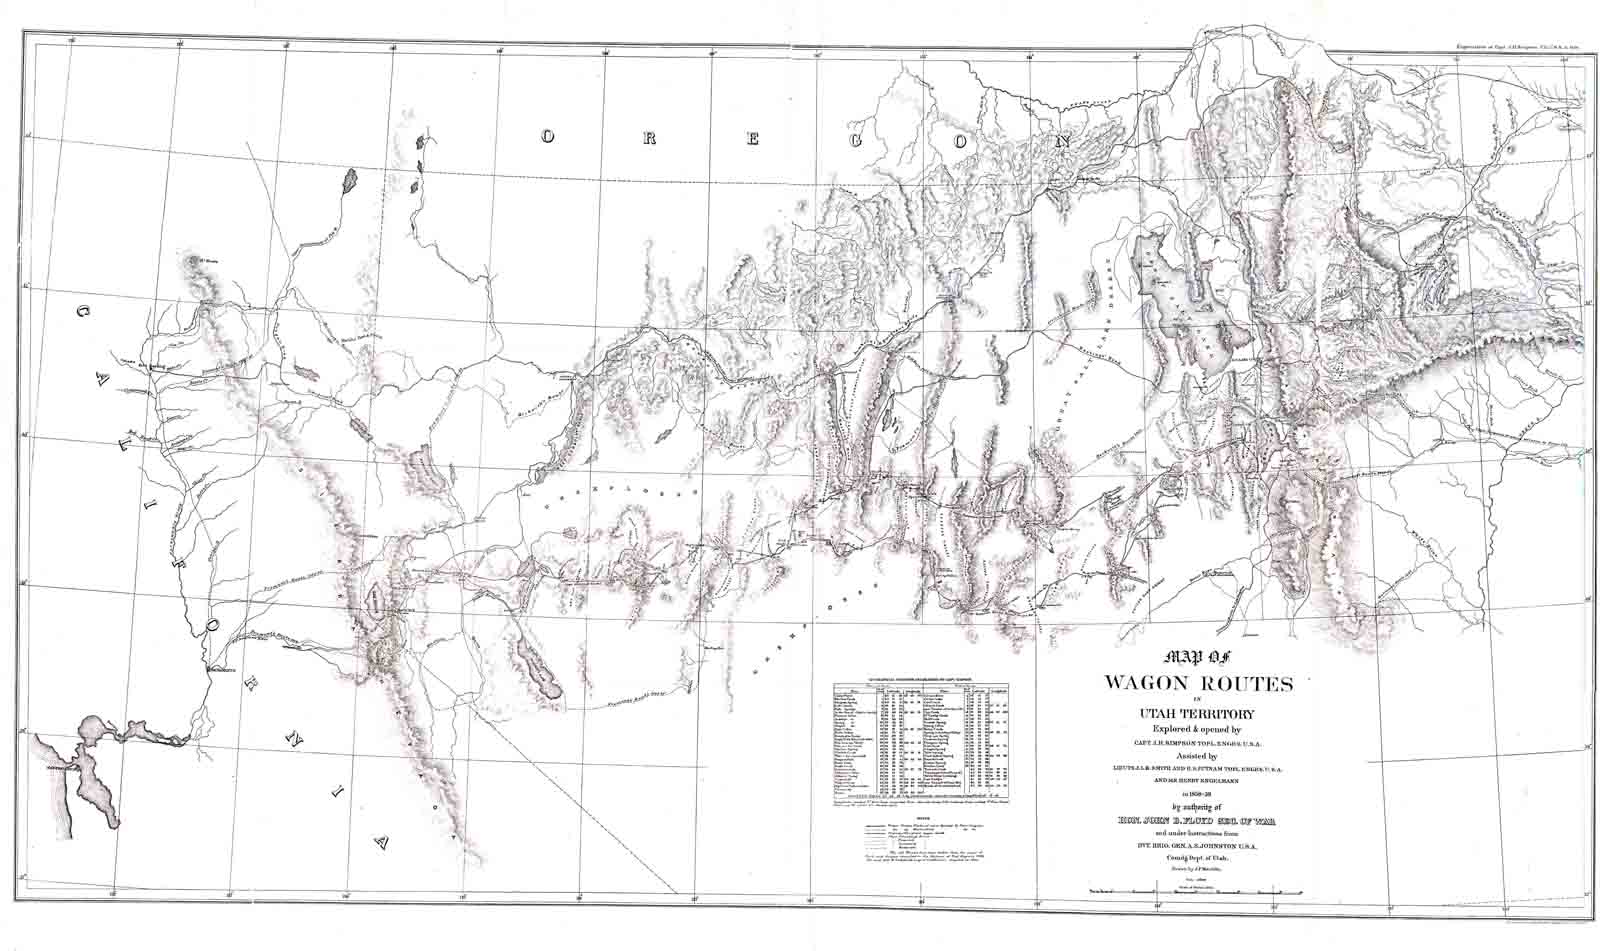 Coll C 001 Map Of Wagon Routes In Utah Territory Map Is Property Of Center Of Southwest